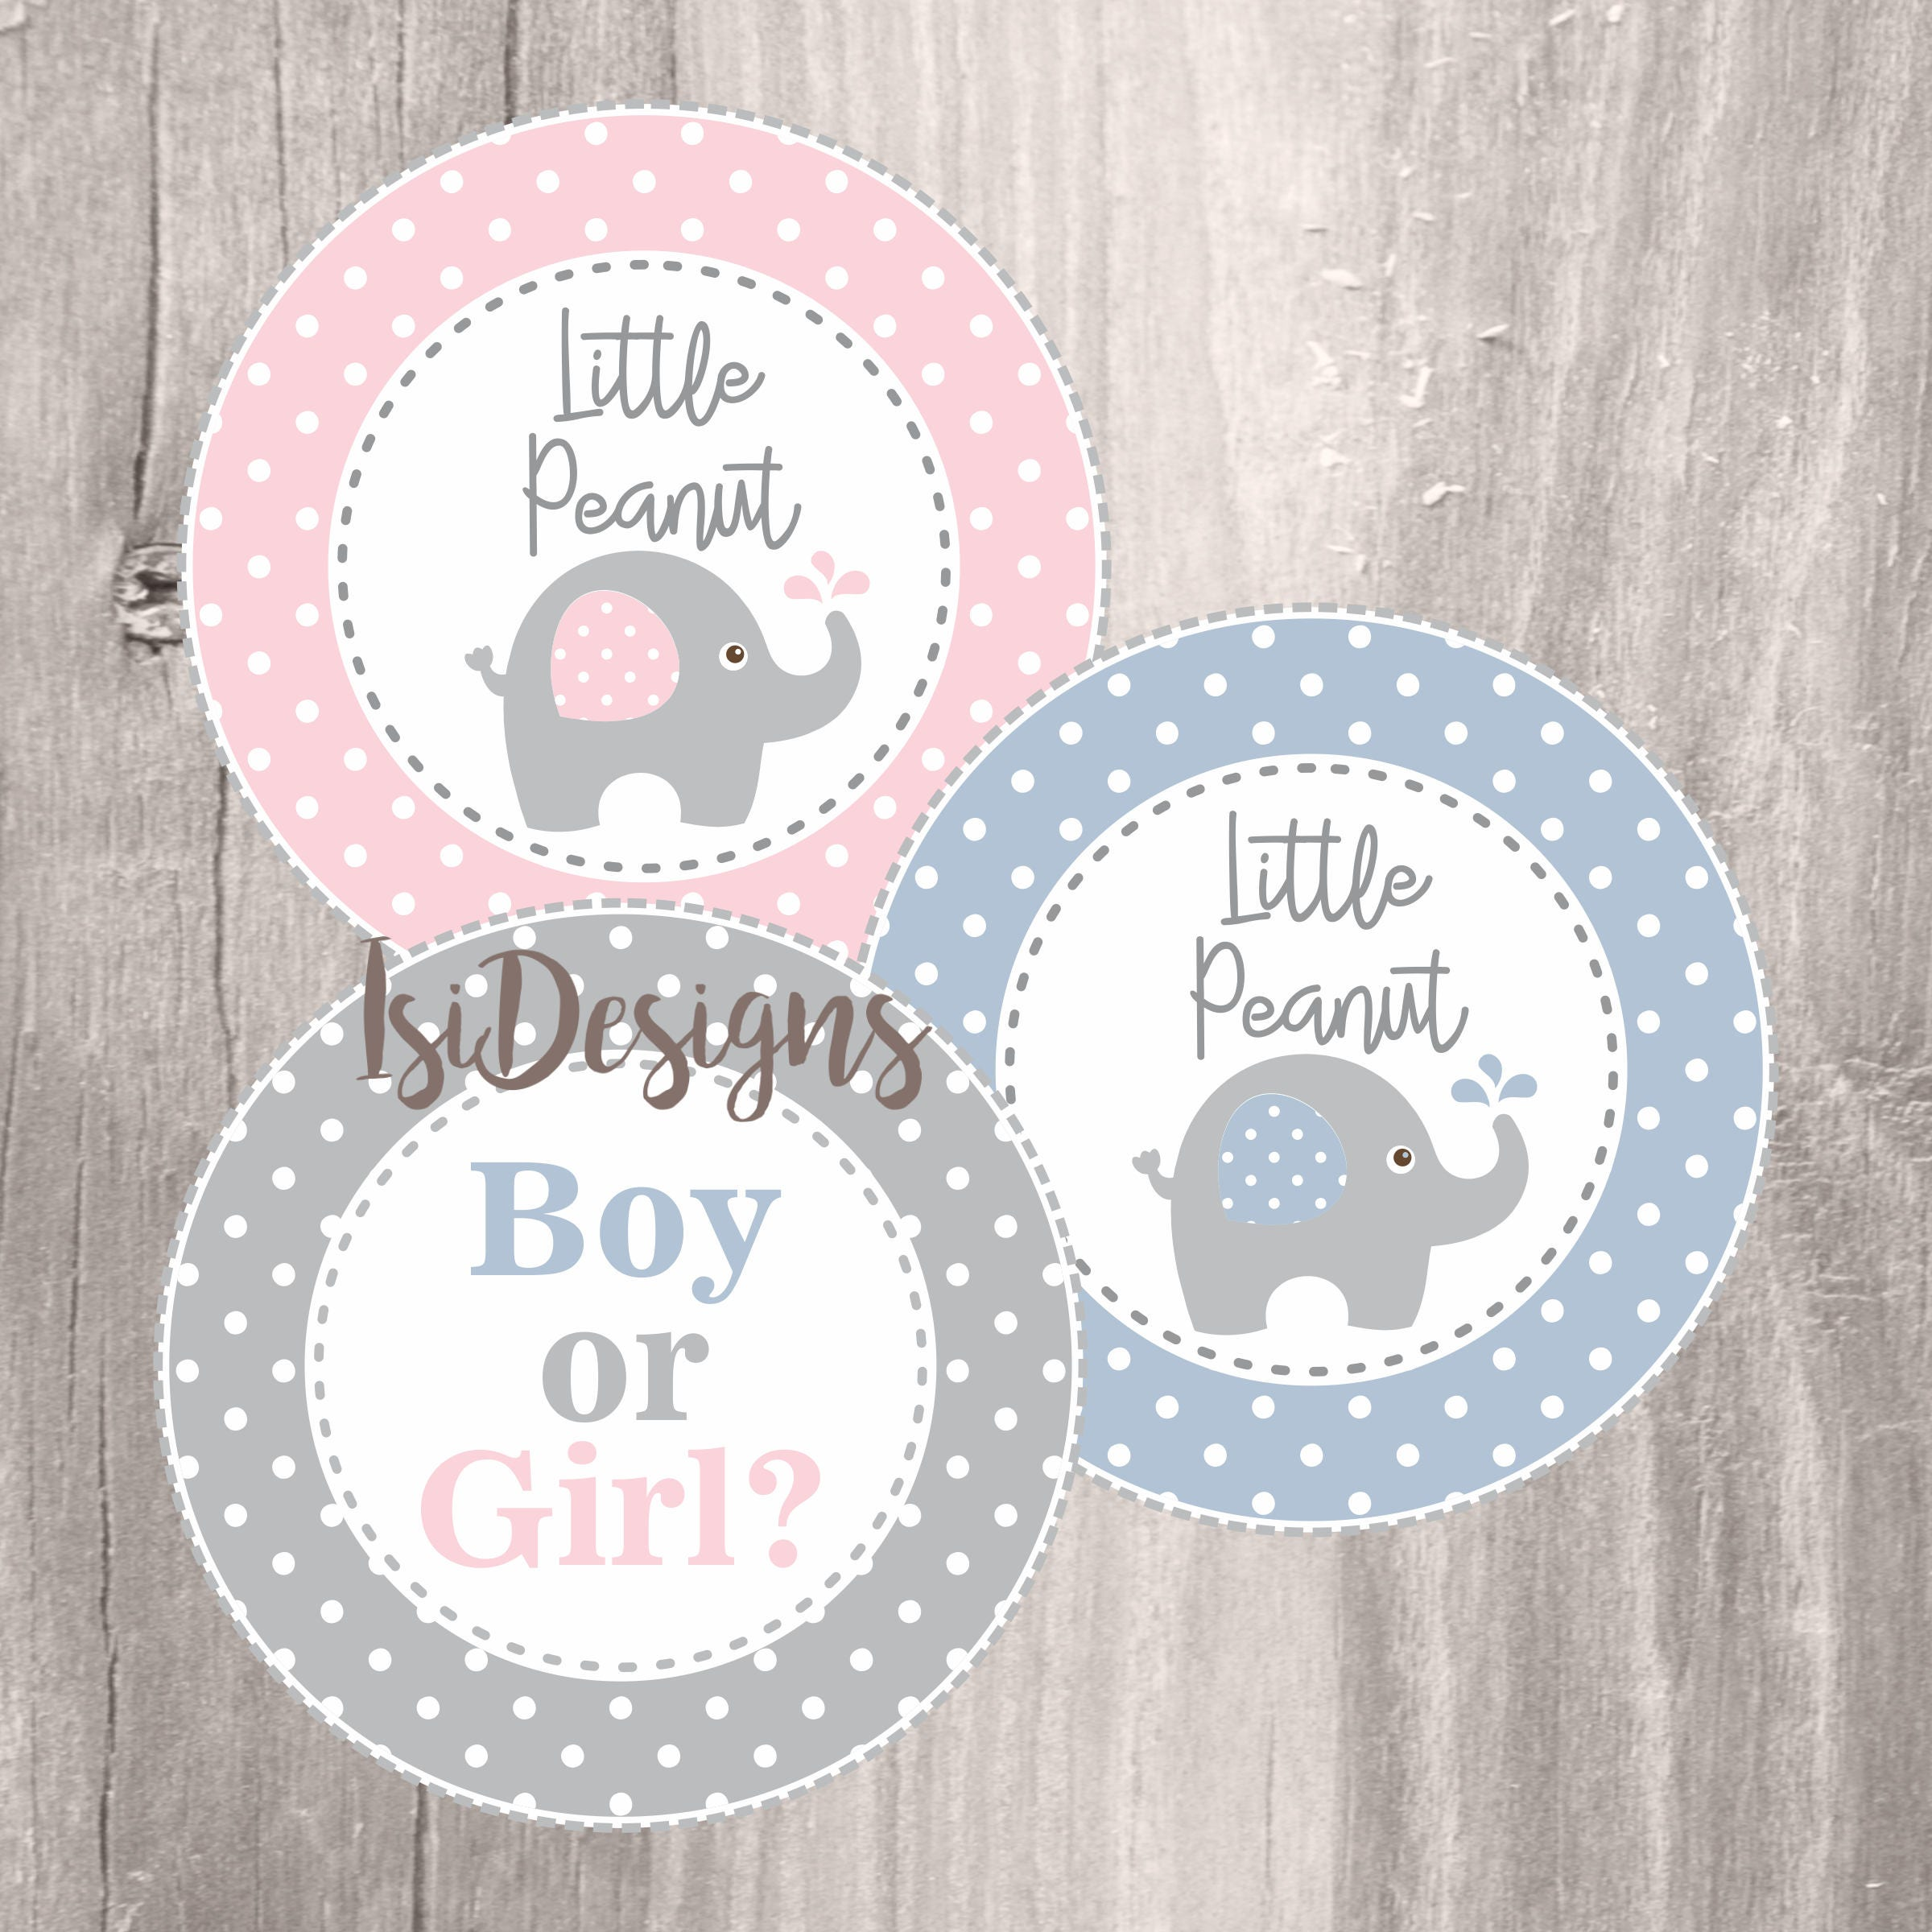 Gianna S Pink And Gray Elephant Nursery Reveal: Elephant Baby Shower Printable Centerpieces Gender Reveal